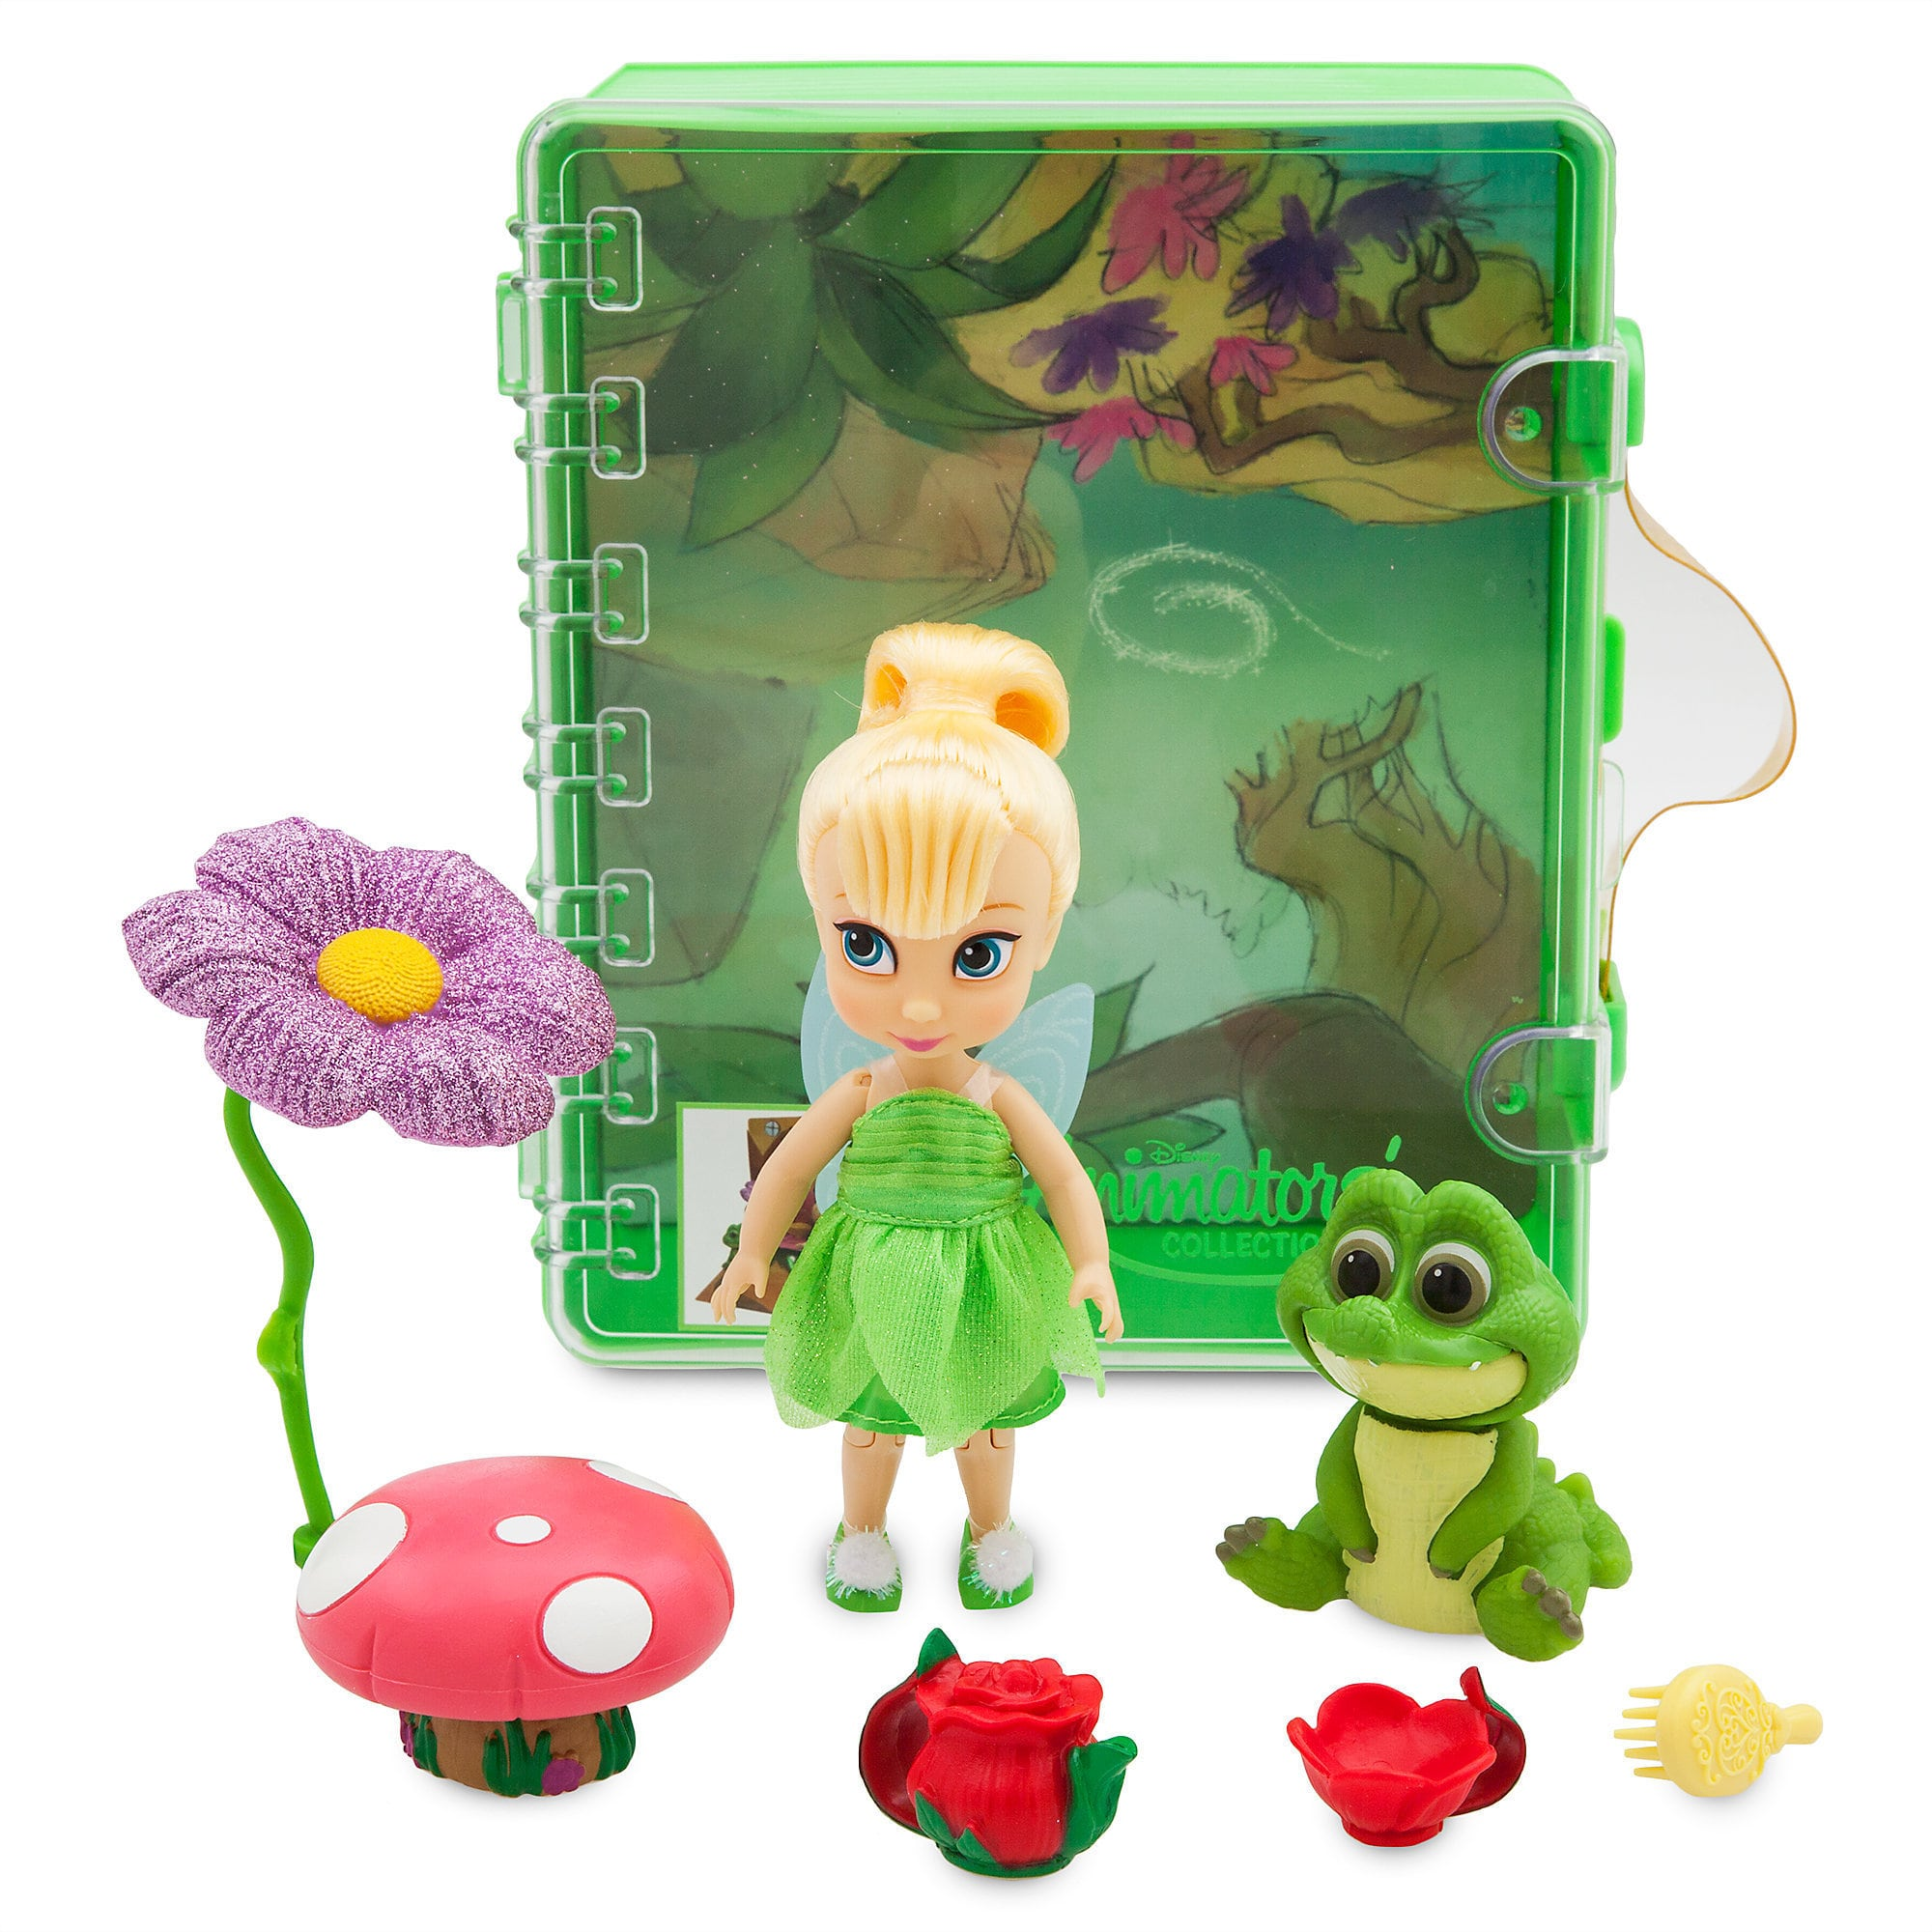 Disney Animators' Collection Tinker Bell Mini Doll Playset